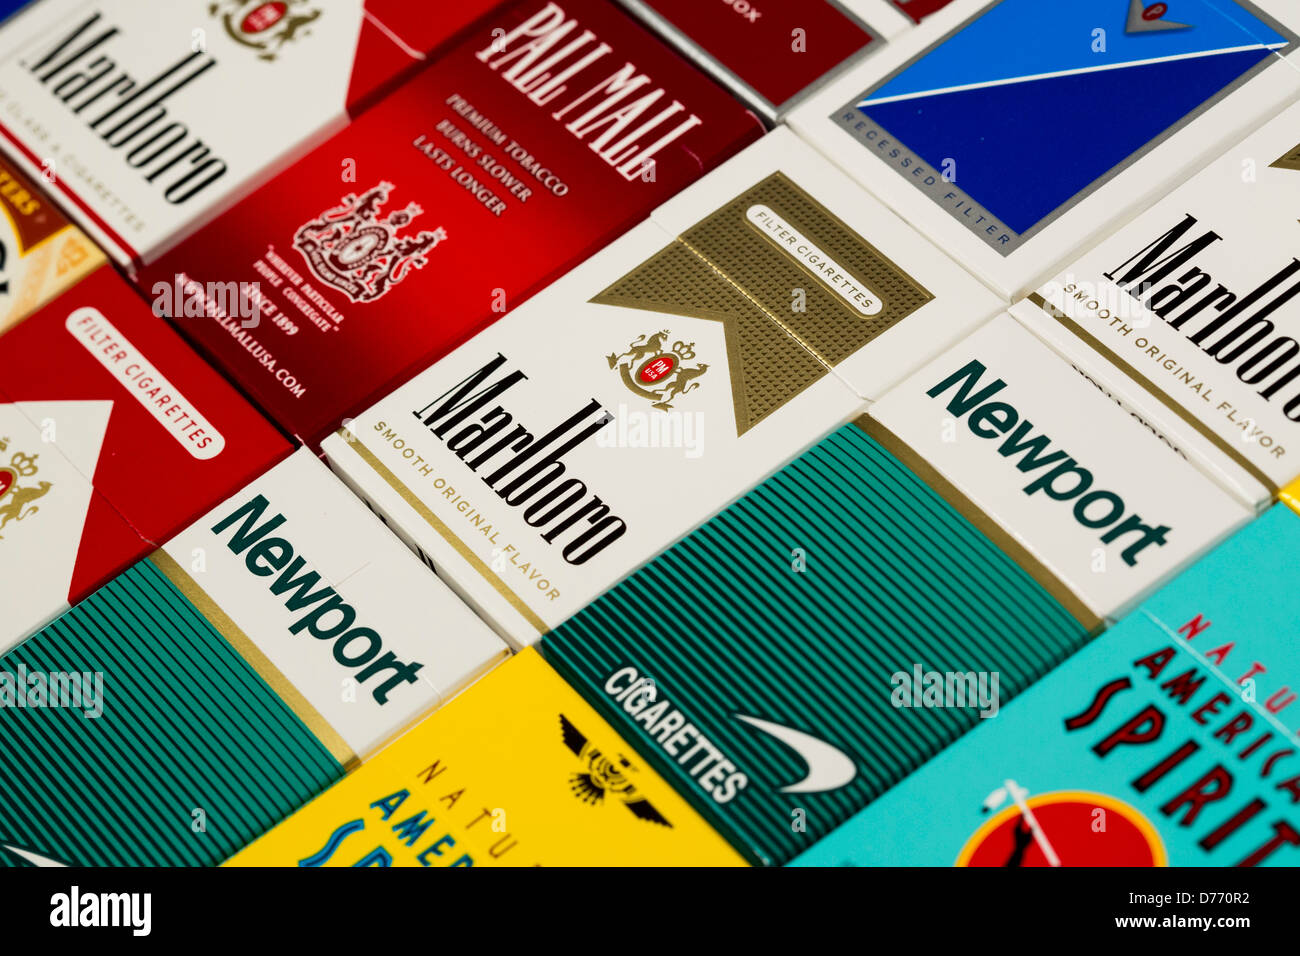 Cheap cigarette cases UK